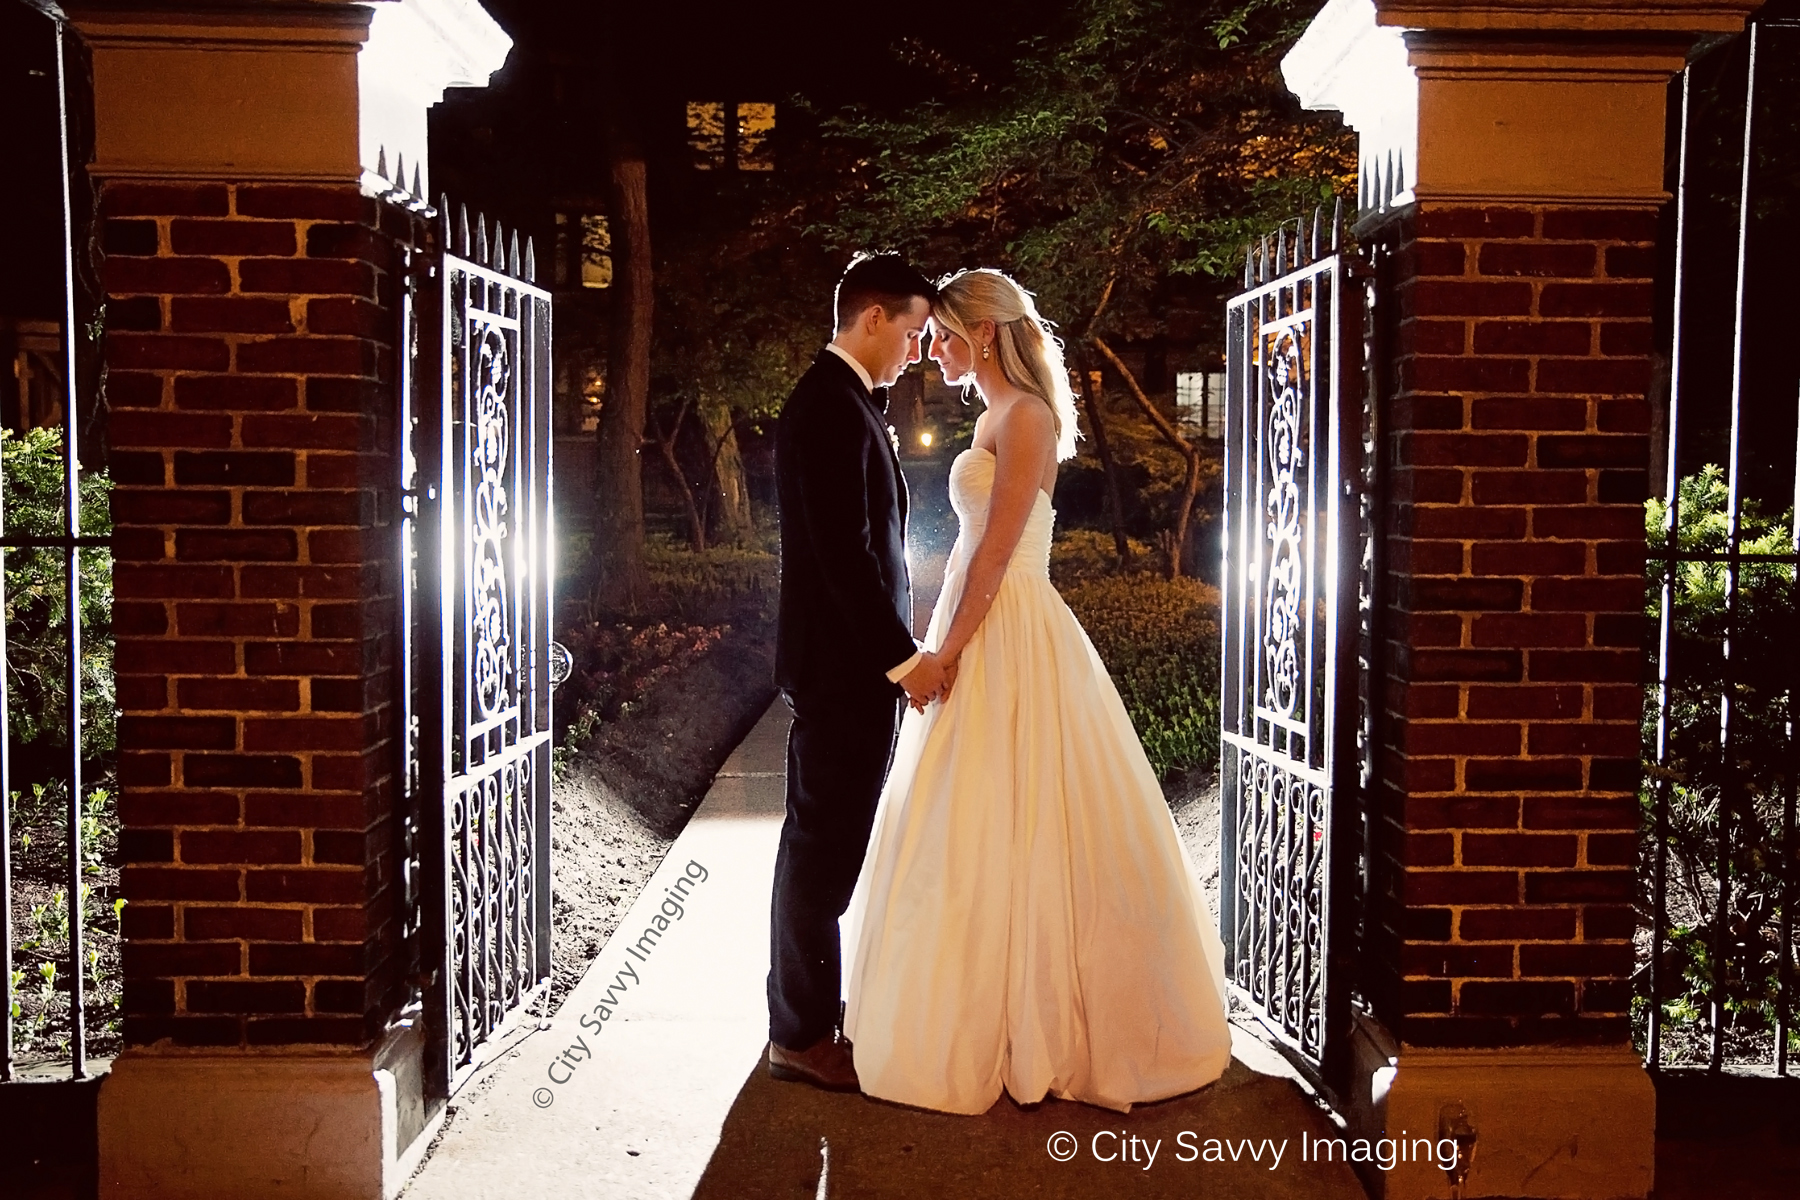 Wedding Dresses Lincoln Park Chicago : Lincoln park zoo nature boardwalk city savvy imaging